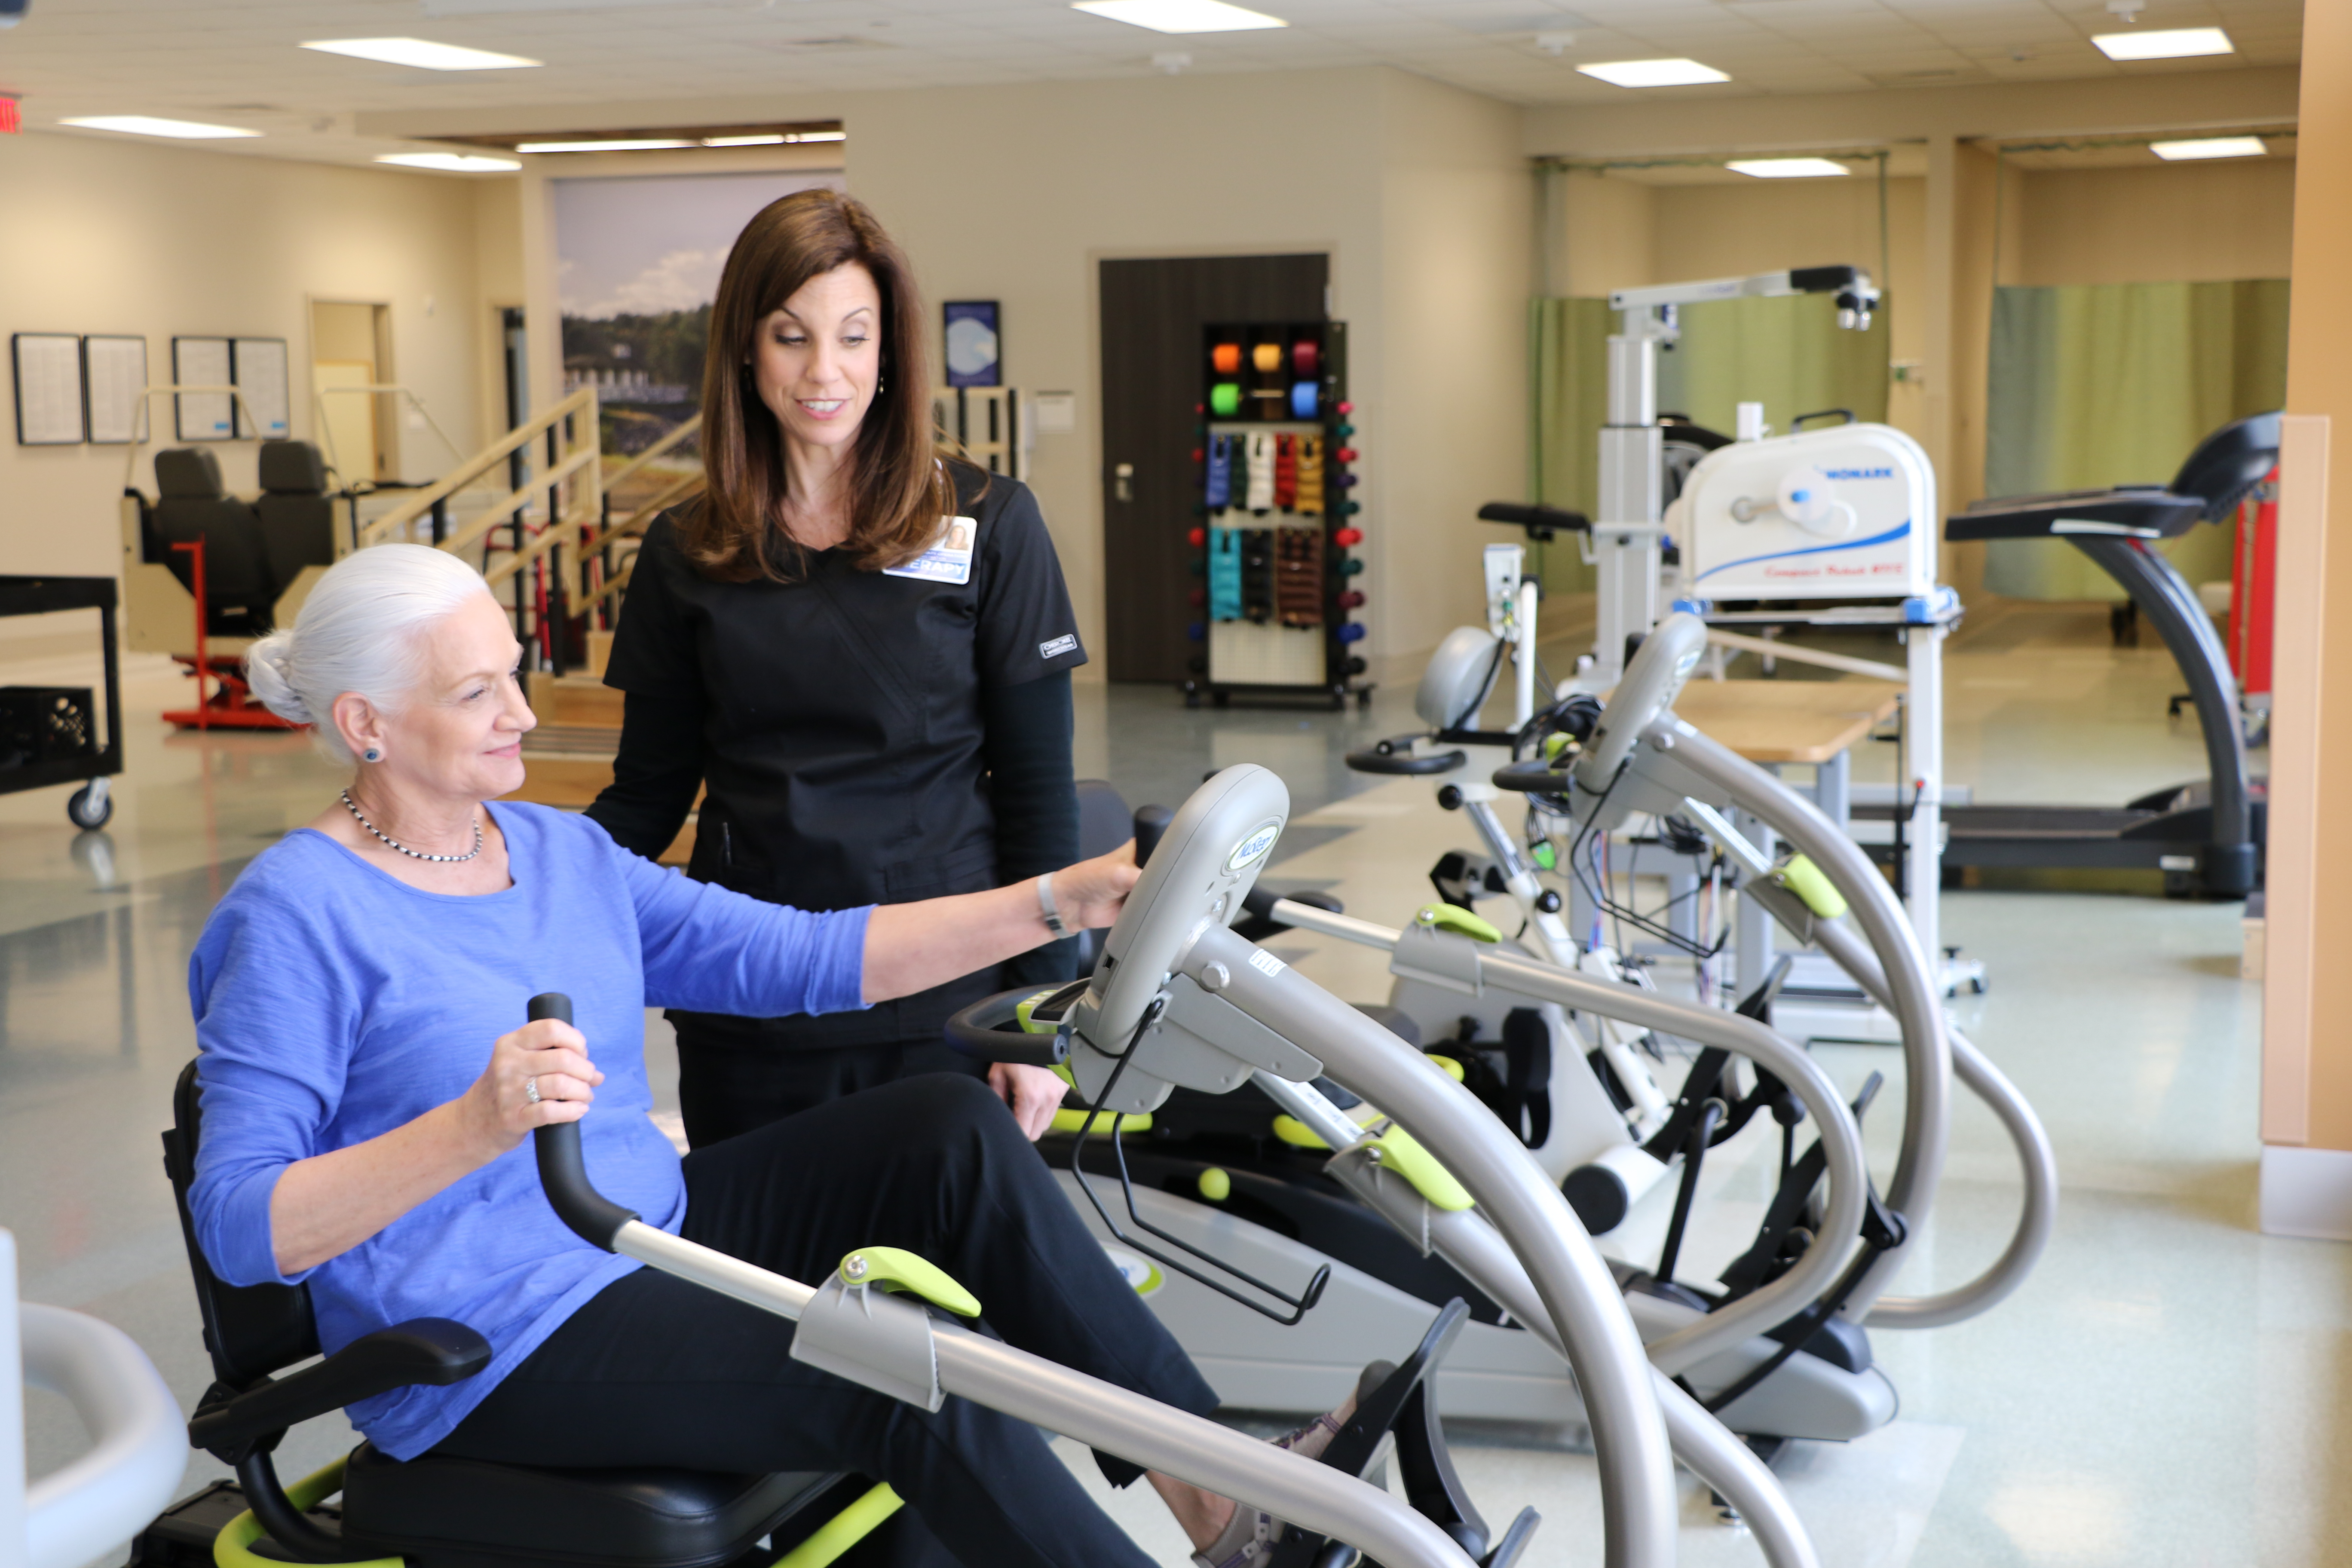 Female patient works on endurance, mobility and strength on the exercise bike in therapy gym with guidance from her female physical therapist